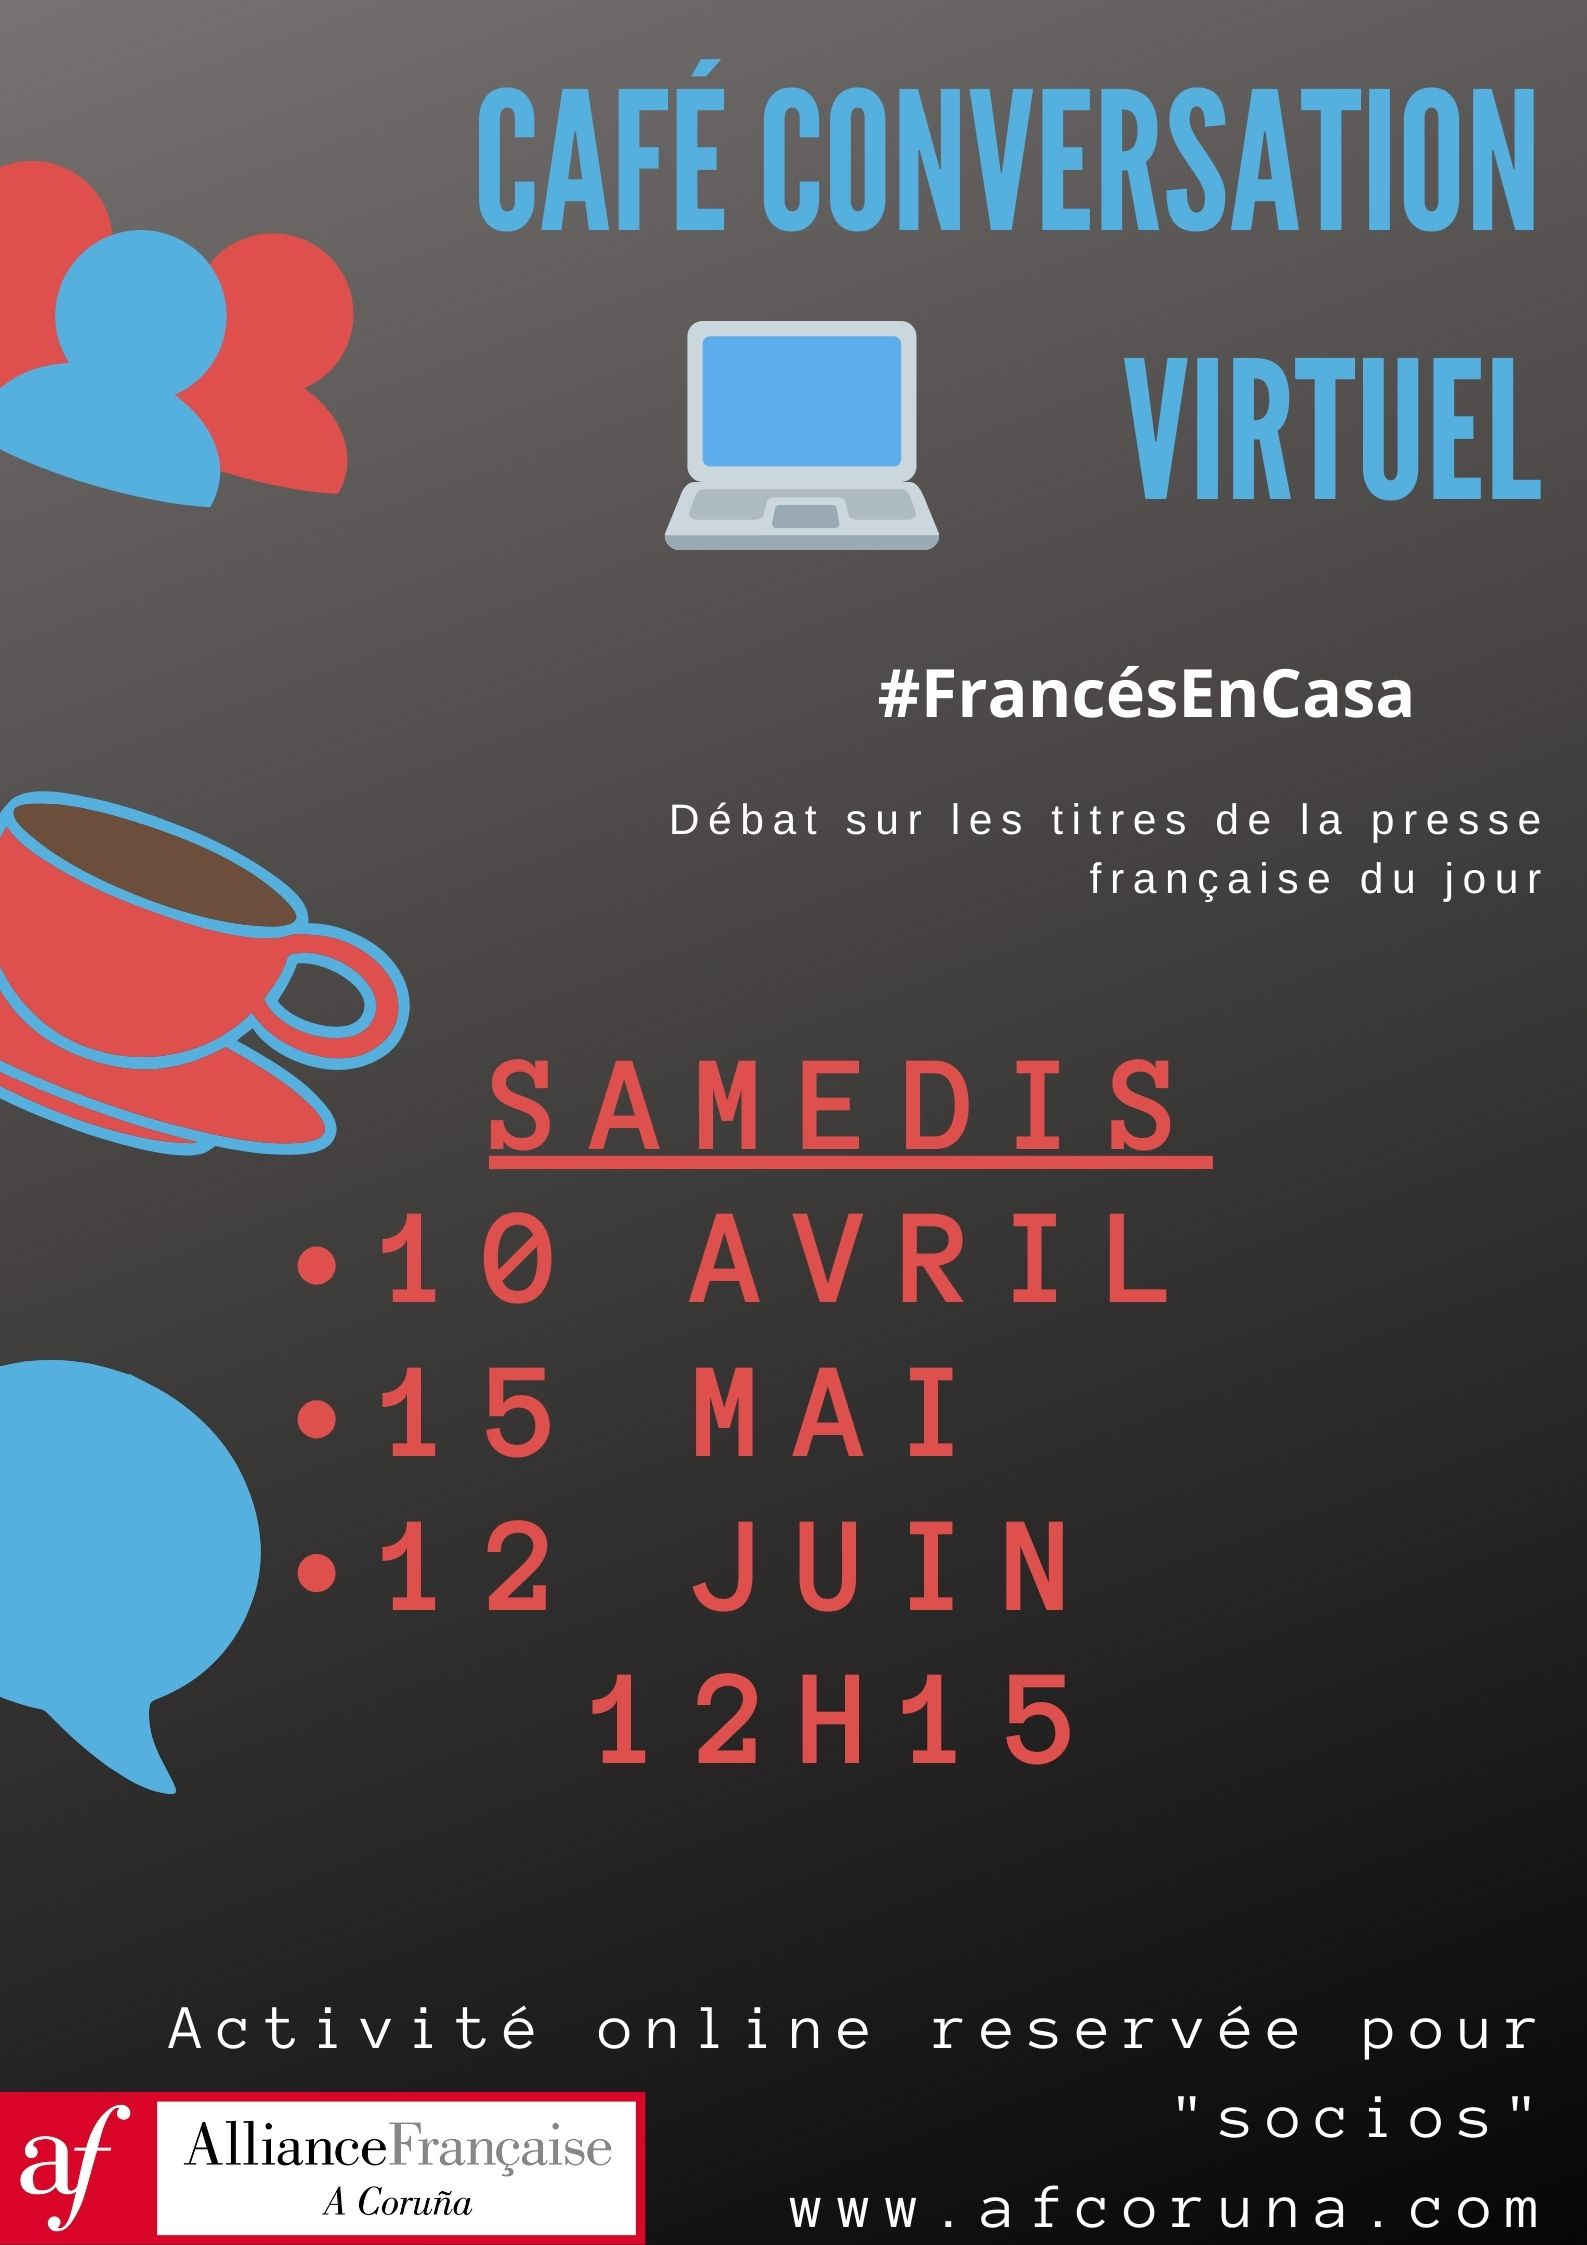 15 mai:  Café conversation virtuel